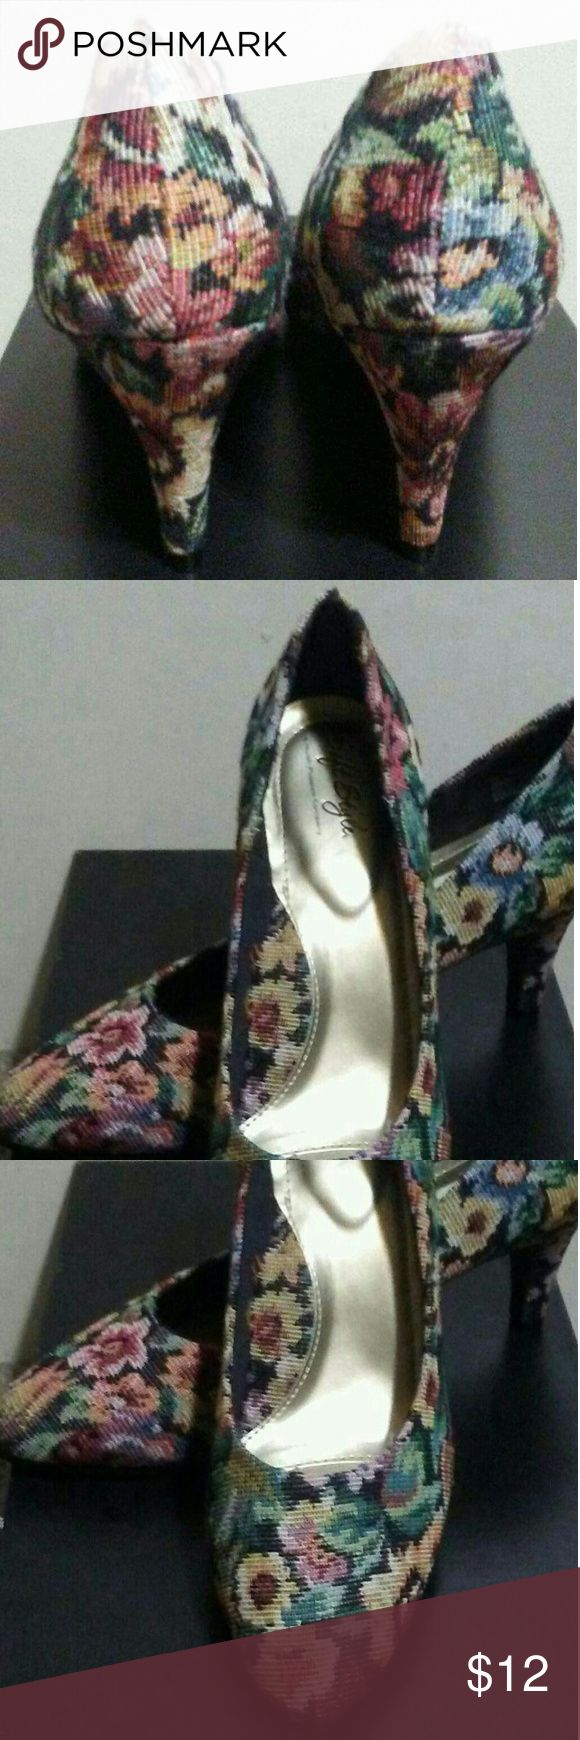 New~ Soft Style Shoes by Hush Puppies New~ Flower print multi-color shoes in a textures canvas material. These shoes are very comfortable, with added padding. The heel is 3 inches women size 9.5.  💥Flowers are SO in right now. The are perfect for any age. PRICED TO SELL💥 Soft Styles by Hush Puppies Shoes Heels